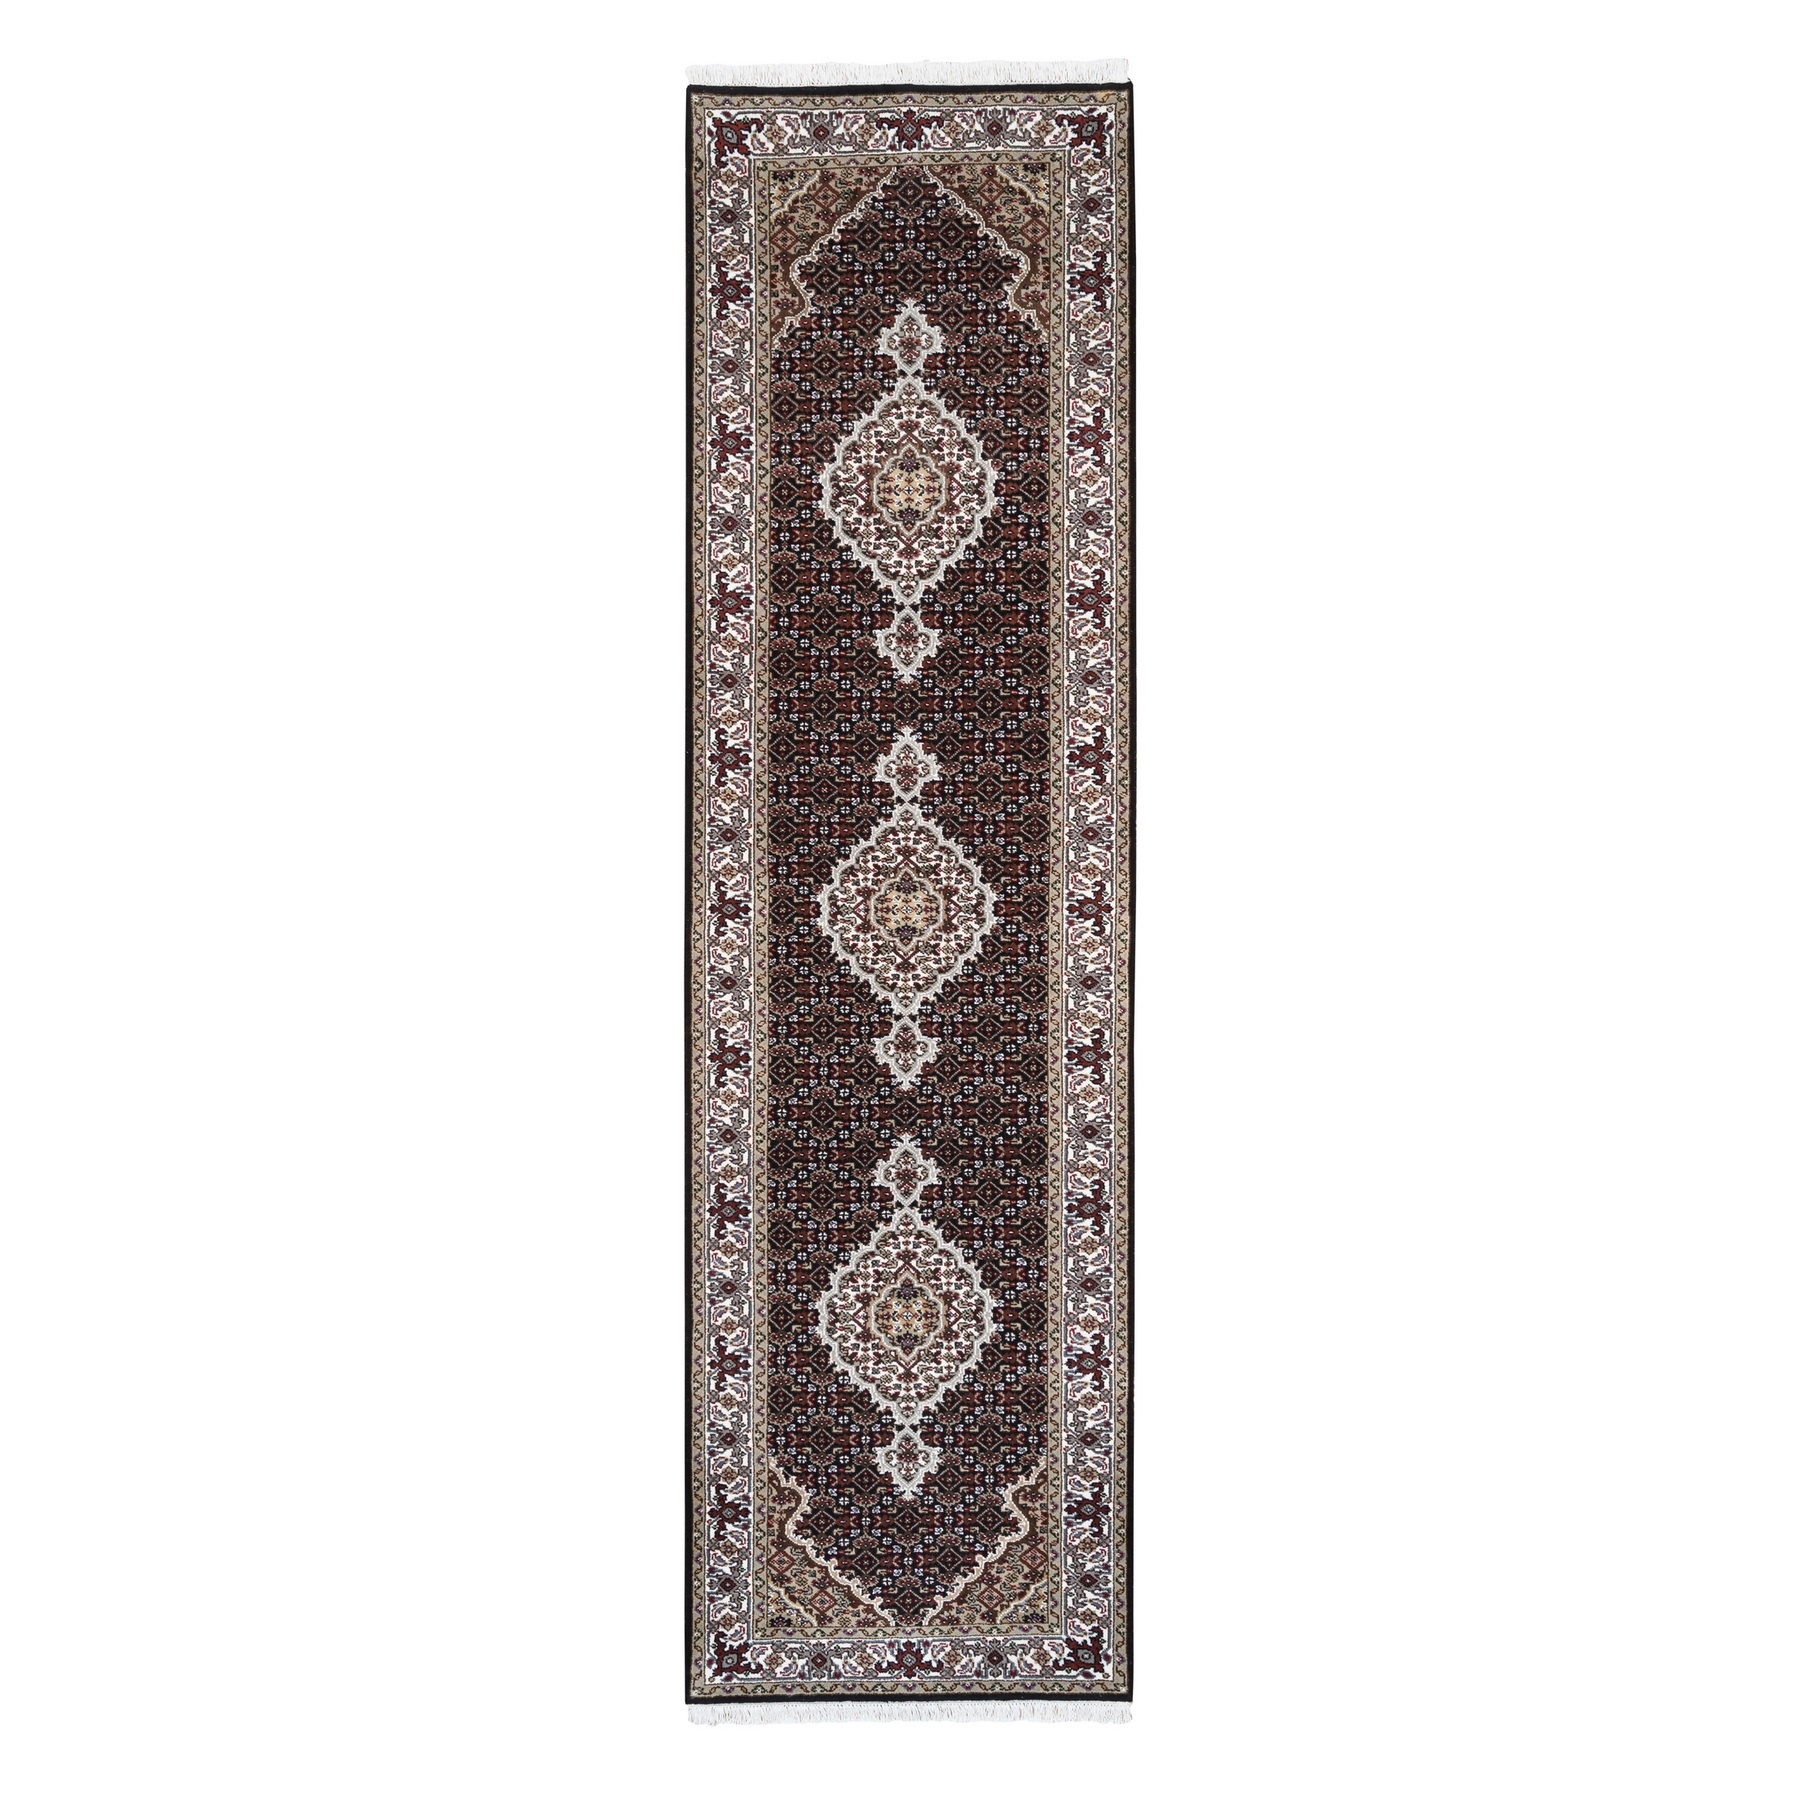 "2'9""x10' Hand Woven Black Wool And Silk Fish Medallion Design Tabriz Mahi Oriental Runner Rug"